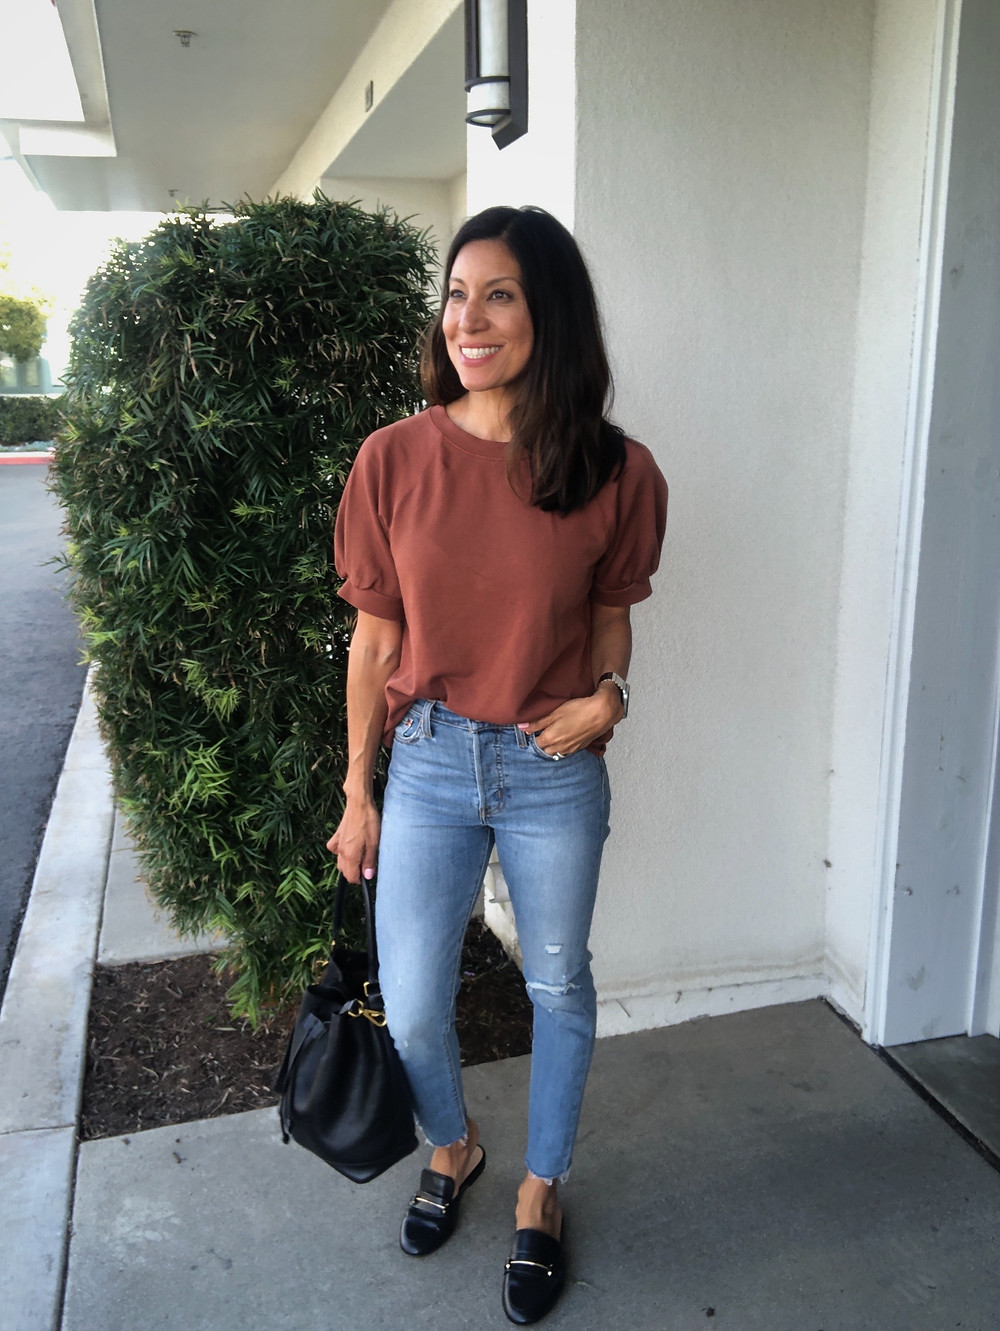 short sleeve top with puffy sleeves